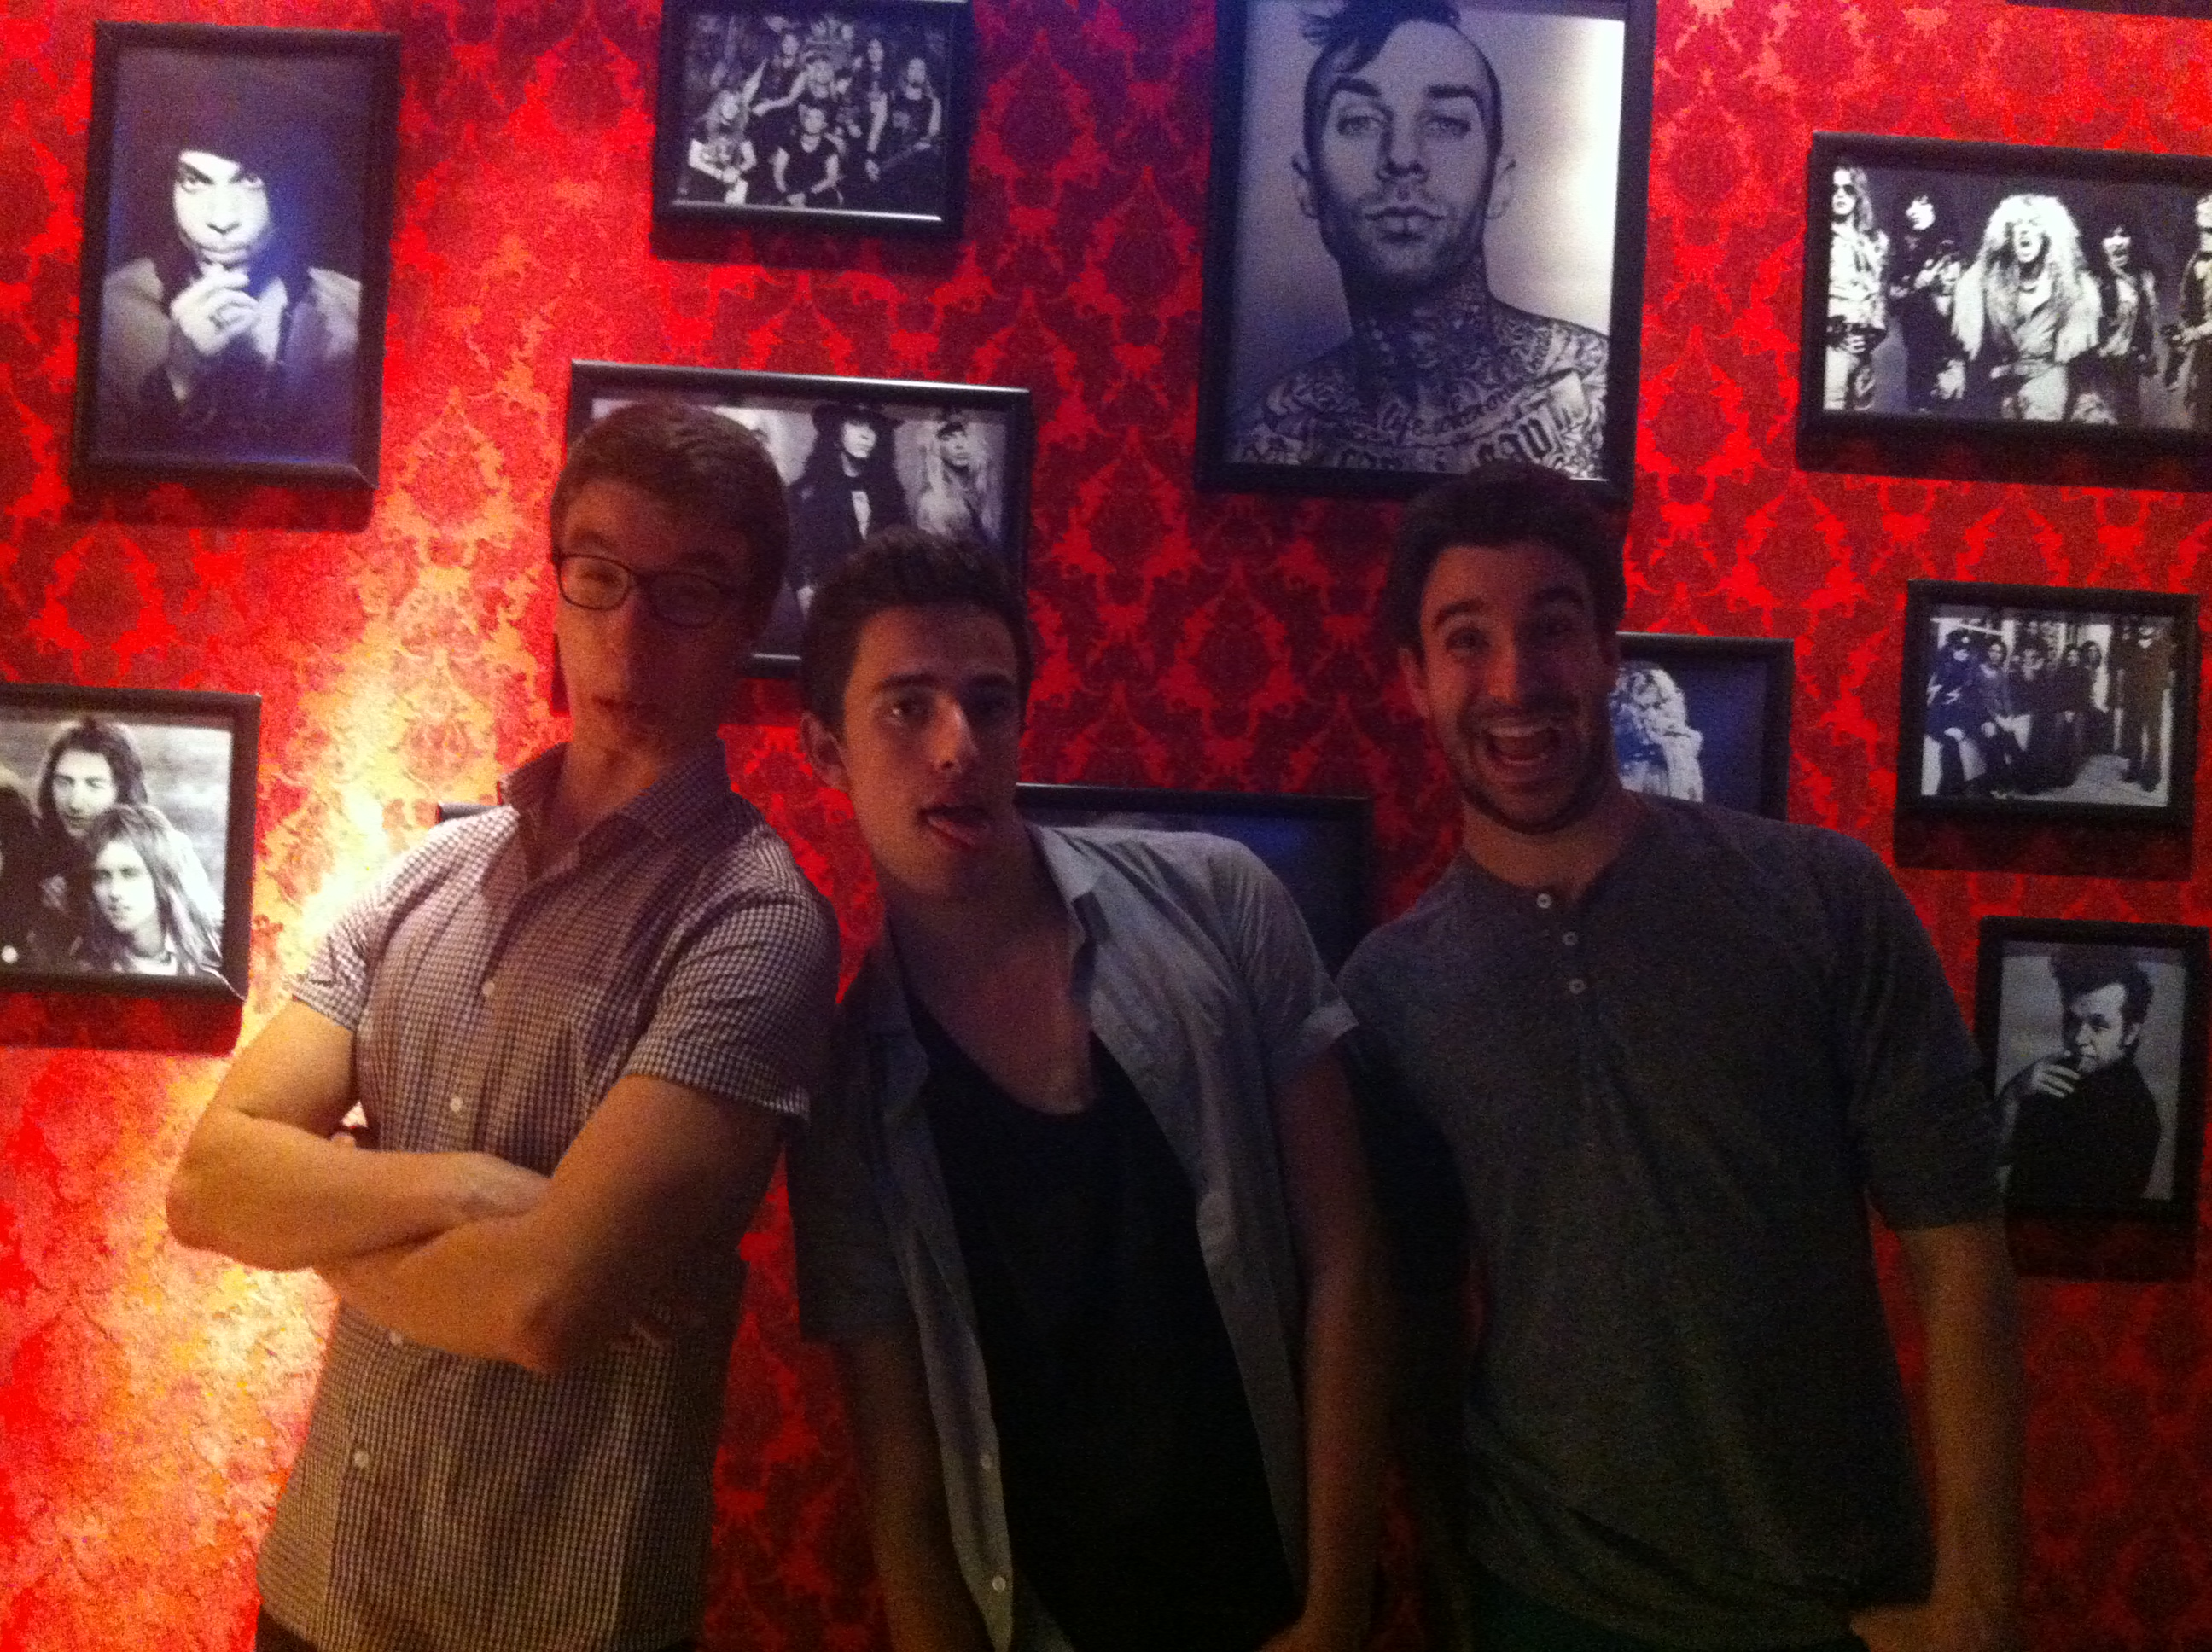 The AJR Brothers goofing around in Patchogue, NY!